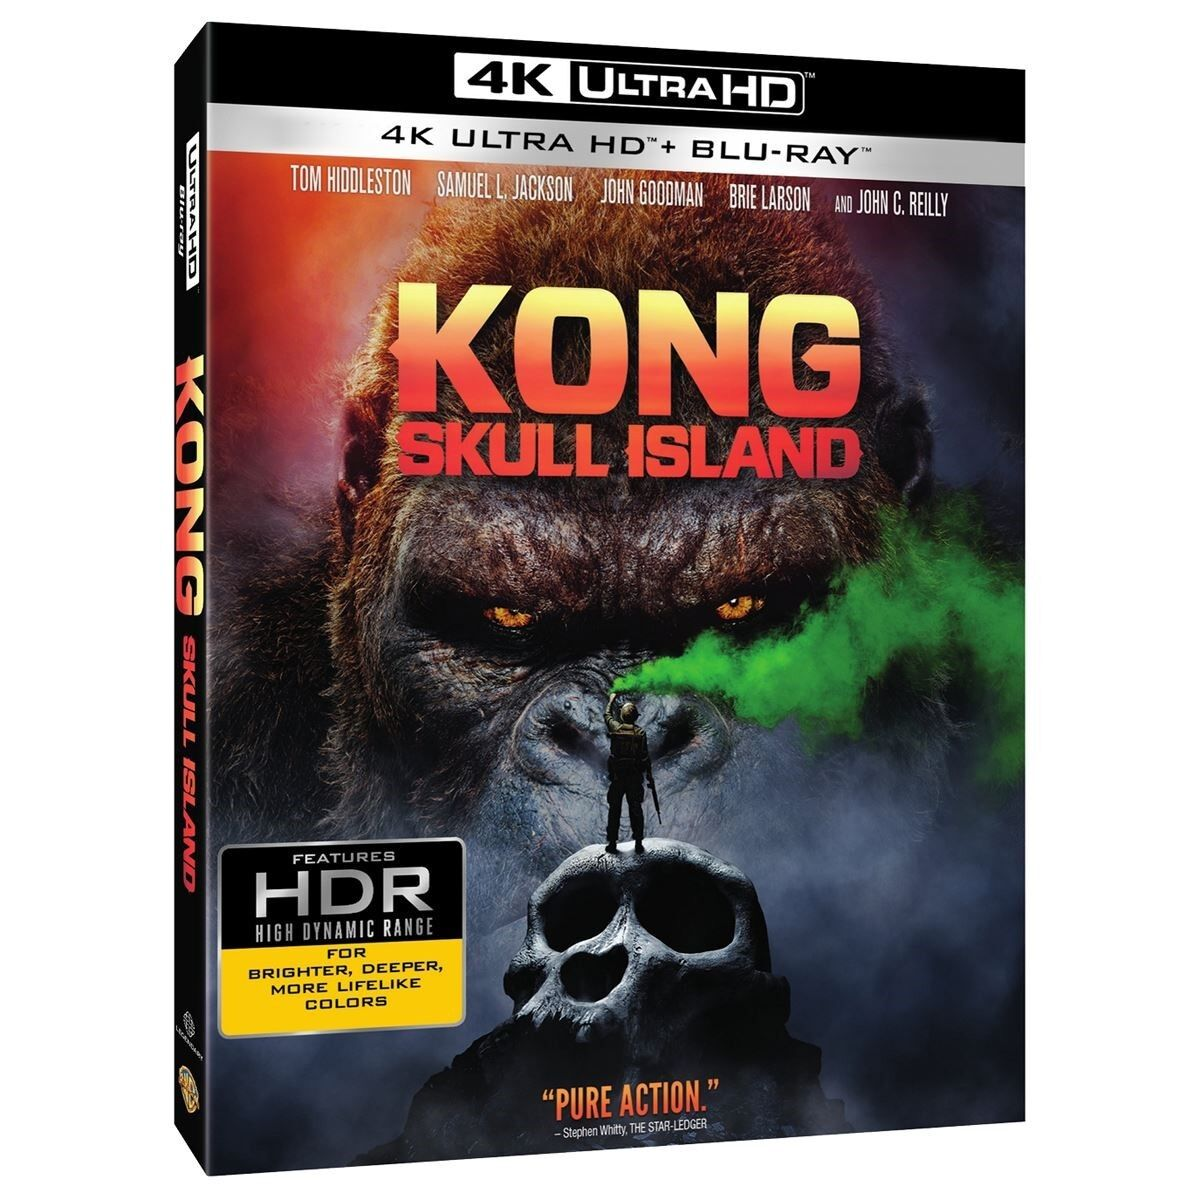 Купить Kong: Skull Island (4K Ultra HD/Blu-ray, 2017, Digital Copy) NEW